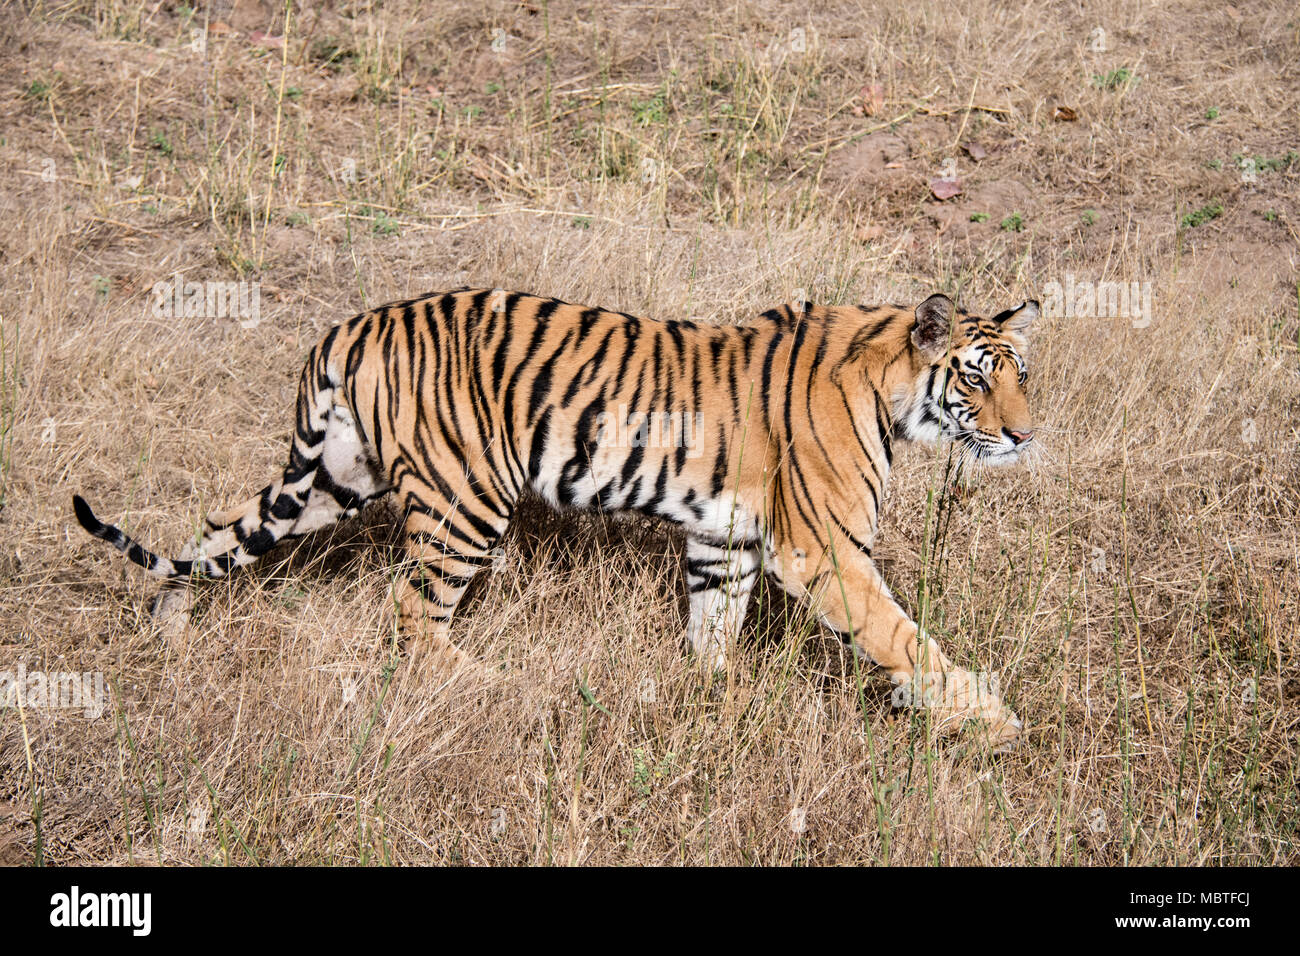 Two year old male Bengal Tiger, Panthera tigris tigris,side view, full length, walking in the Bandhavgarh Tiger Reserve, Madhya Pradesh, India Stock Photo